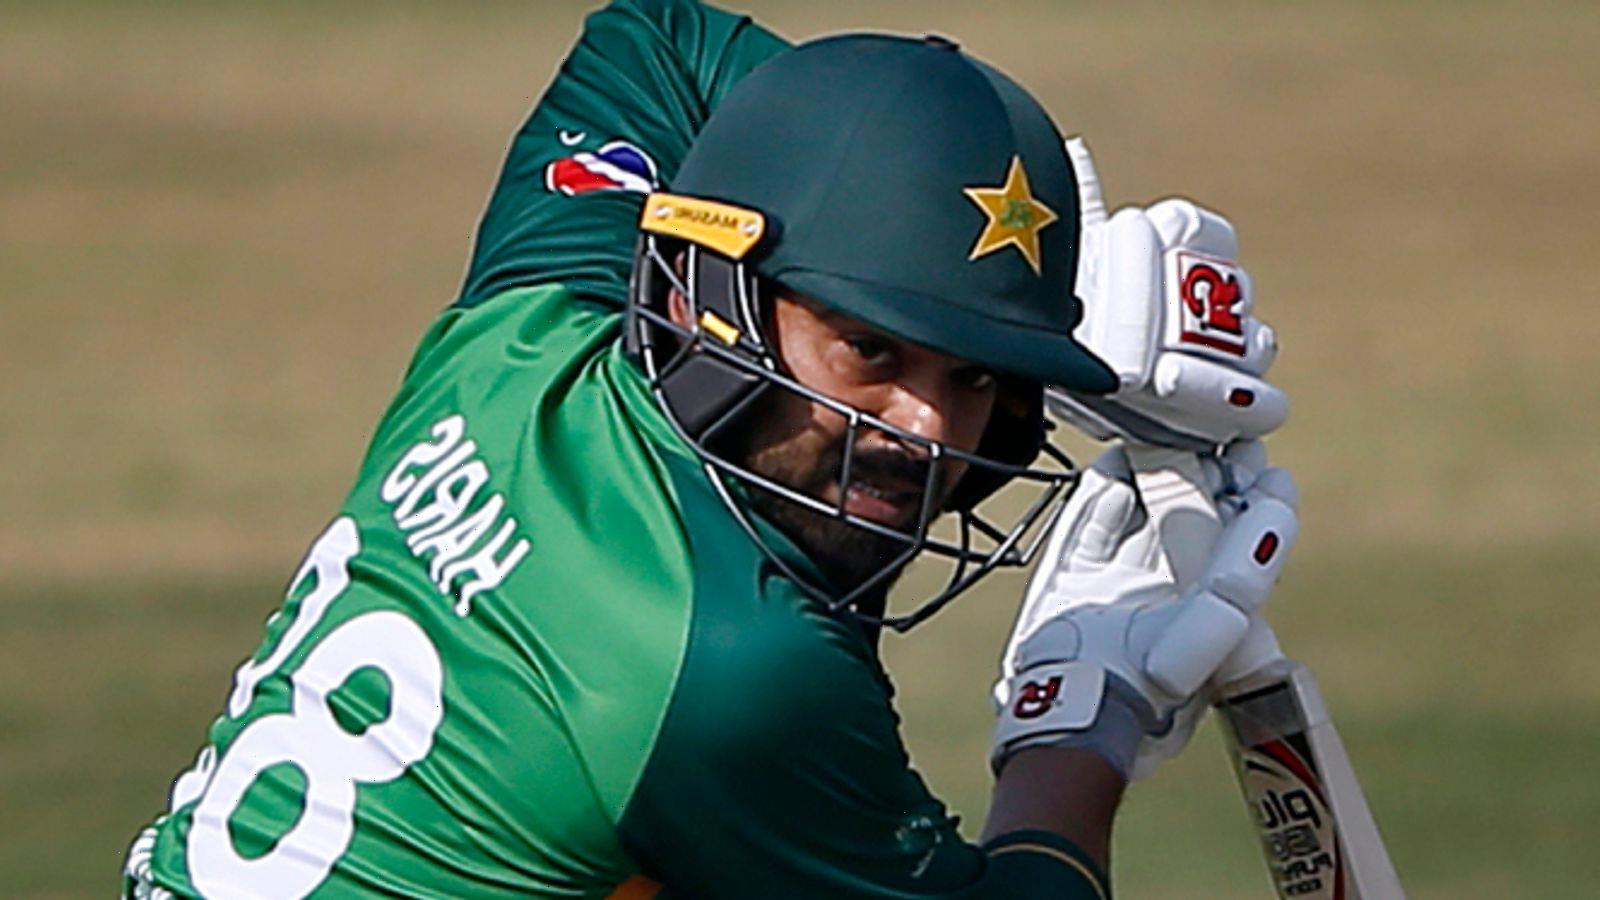 Haris Sohail: Pakistan batsman ruled out of ODI series against England with hamstring injury